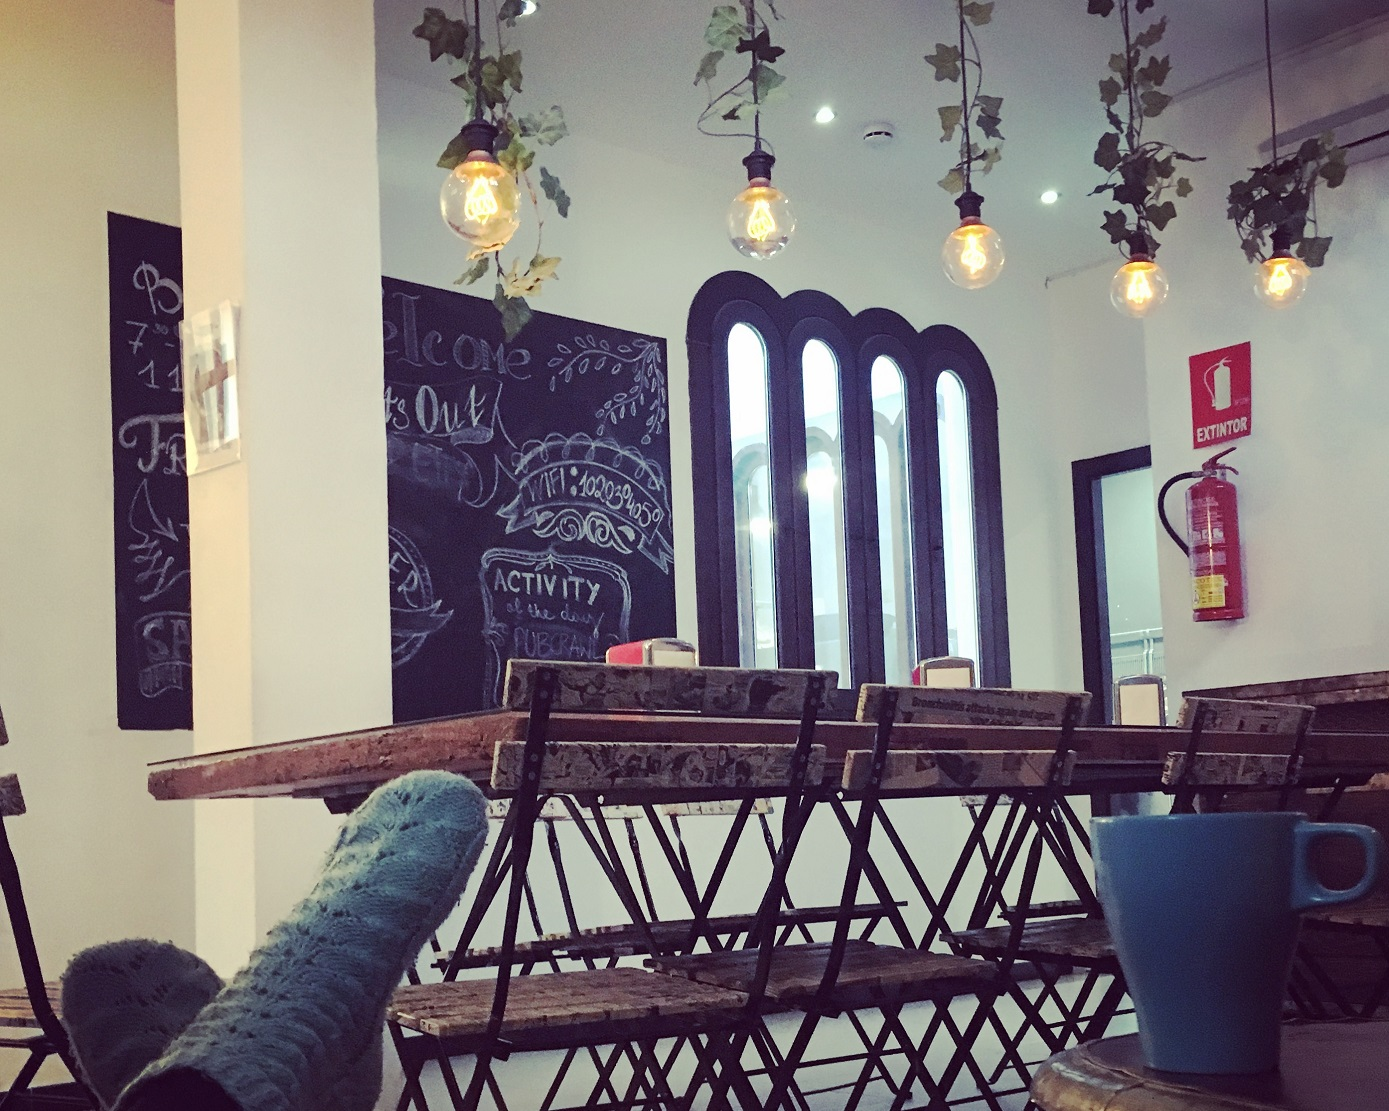 Lights Out Hostel - Where to Stay in Malaga